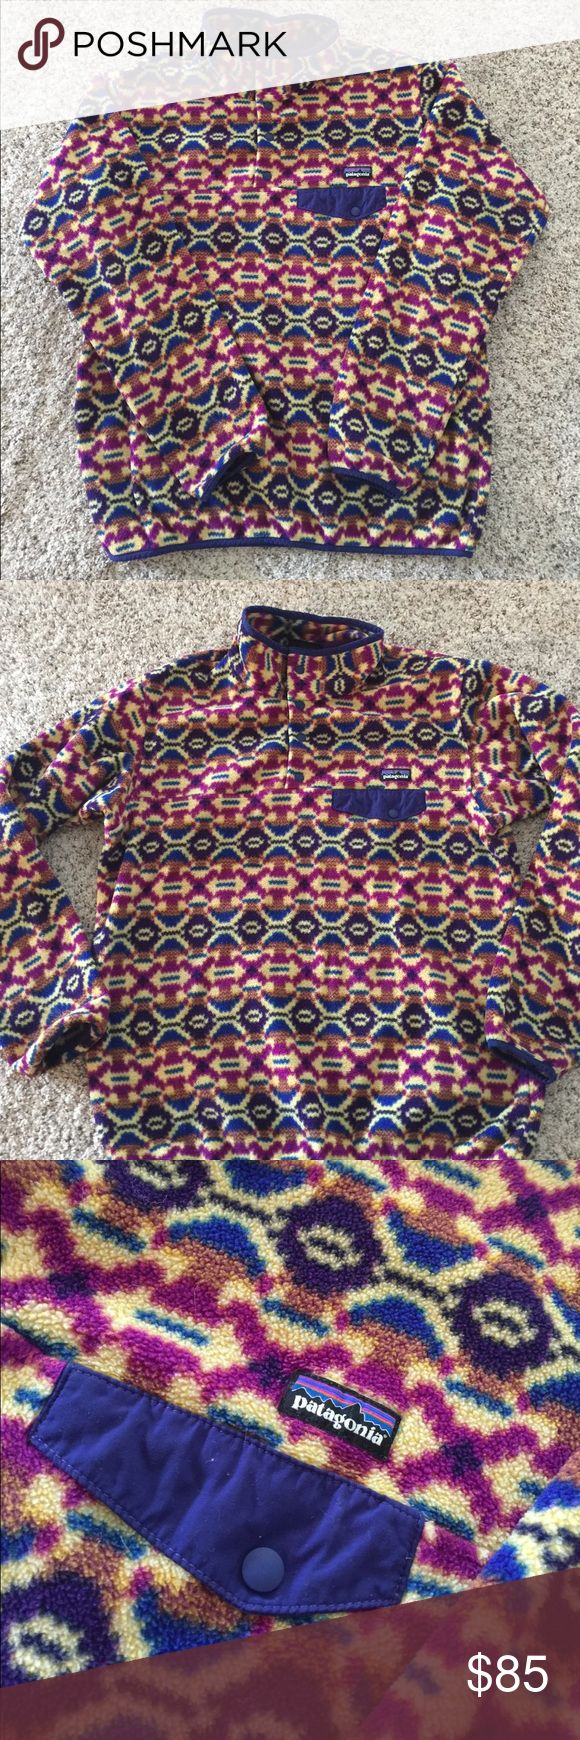 Patagonia Synchilla pullover SZ L Patagonia Synchilla pullover SZ L. Gorgeous pattern and great condition. I bought this believing it was a M. No piling or tears. Patagonia Sweaters